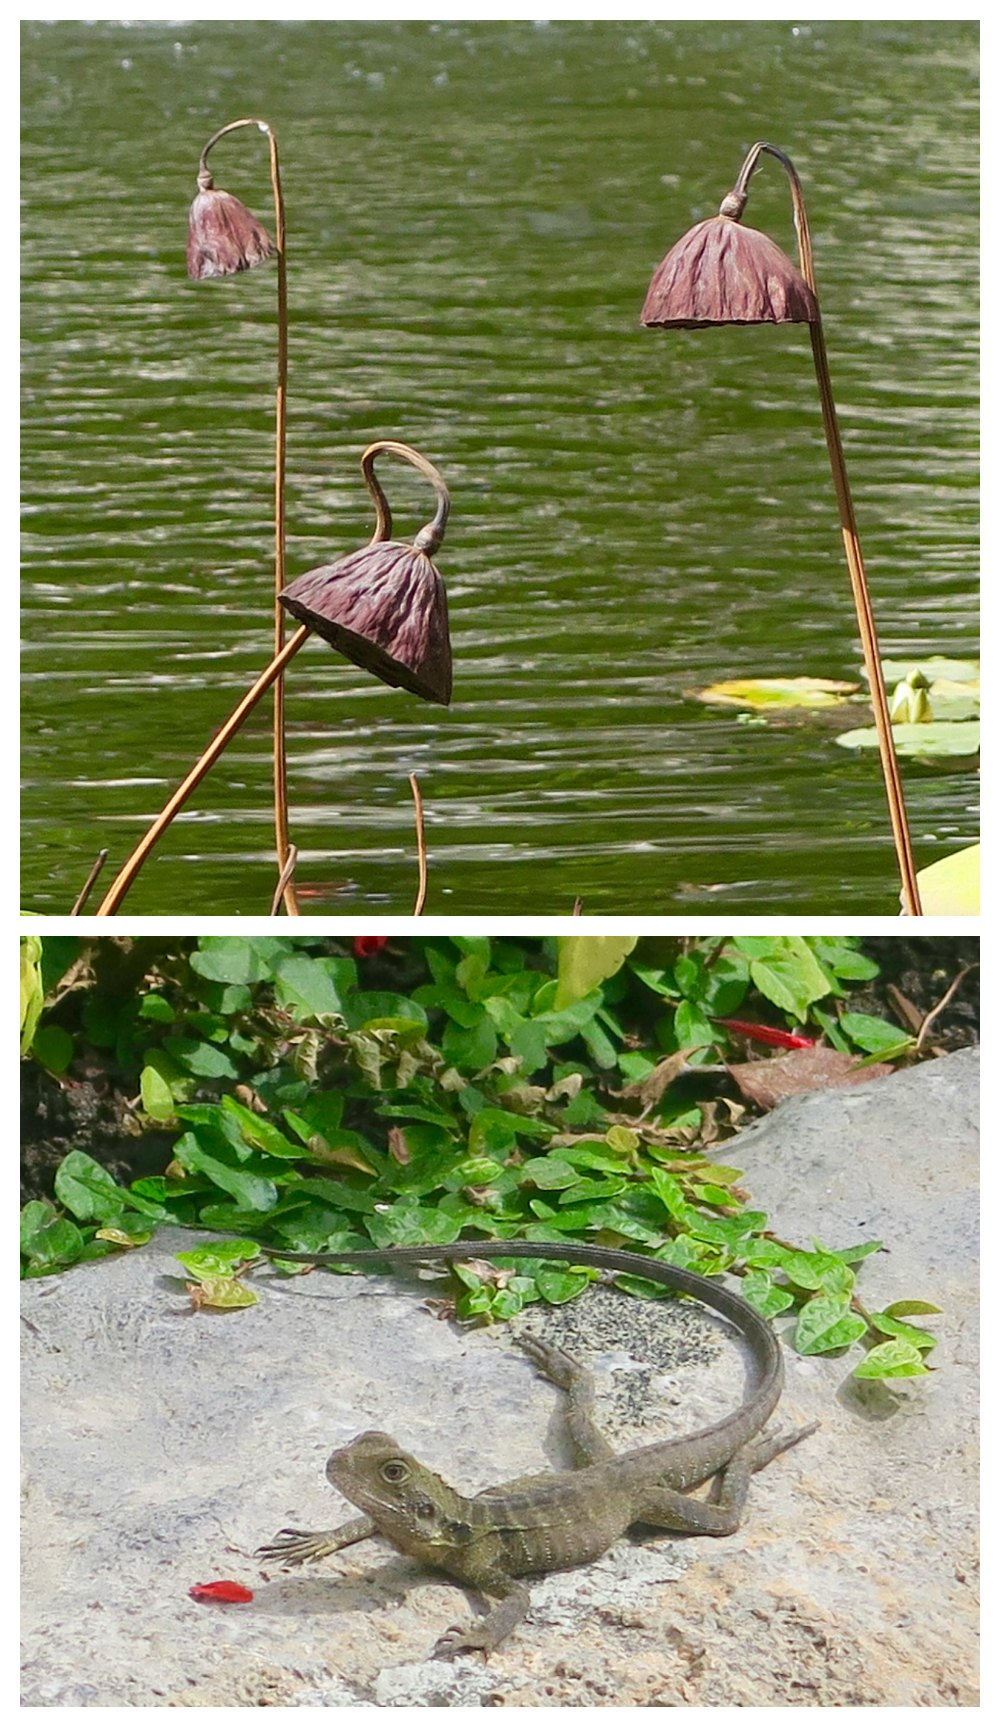 plants and lizard at chinese gardens darling harbour sydney |curlytraveller.com